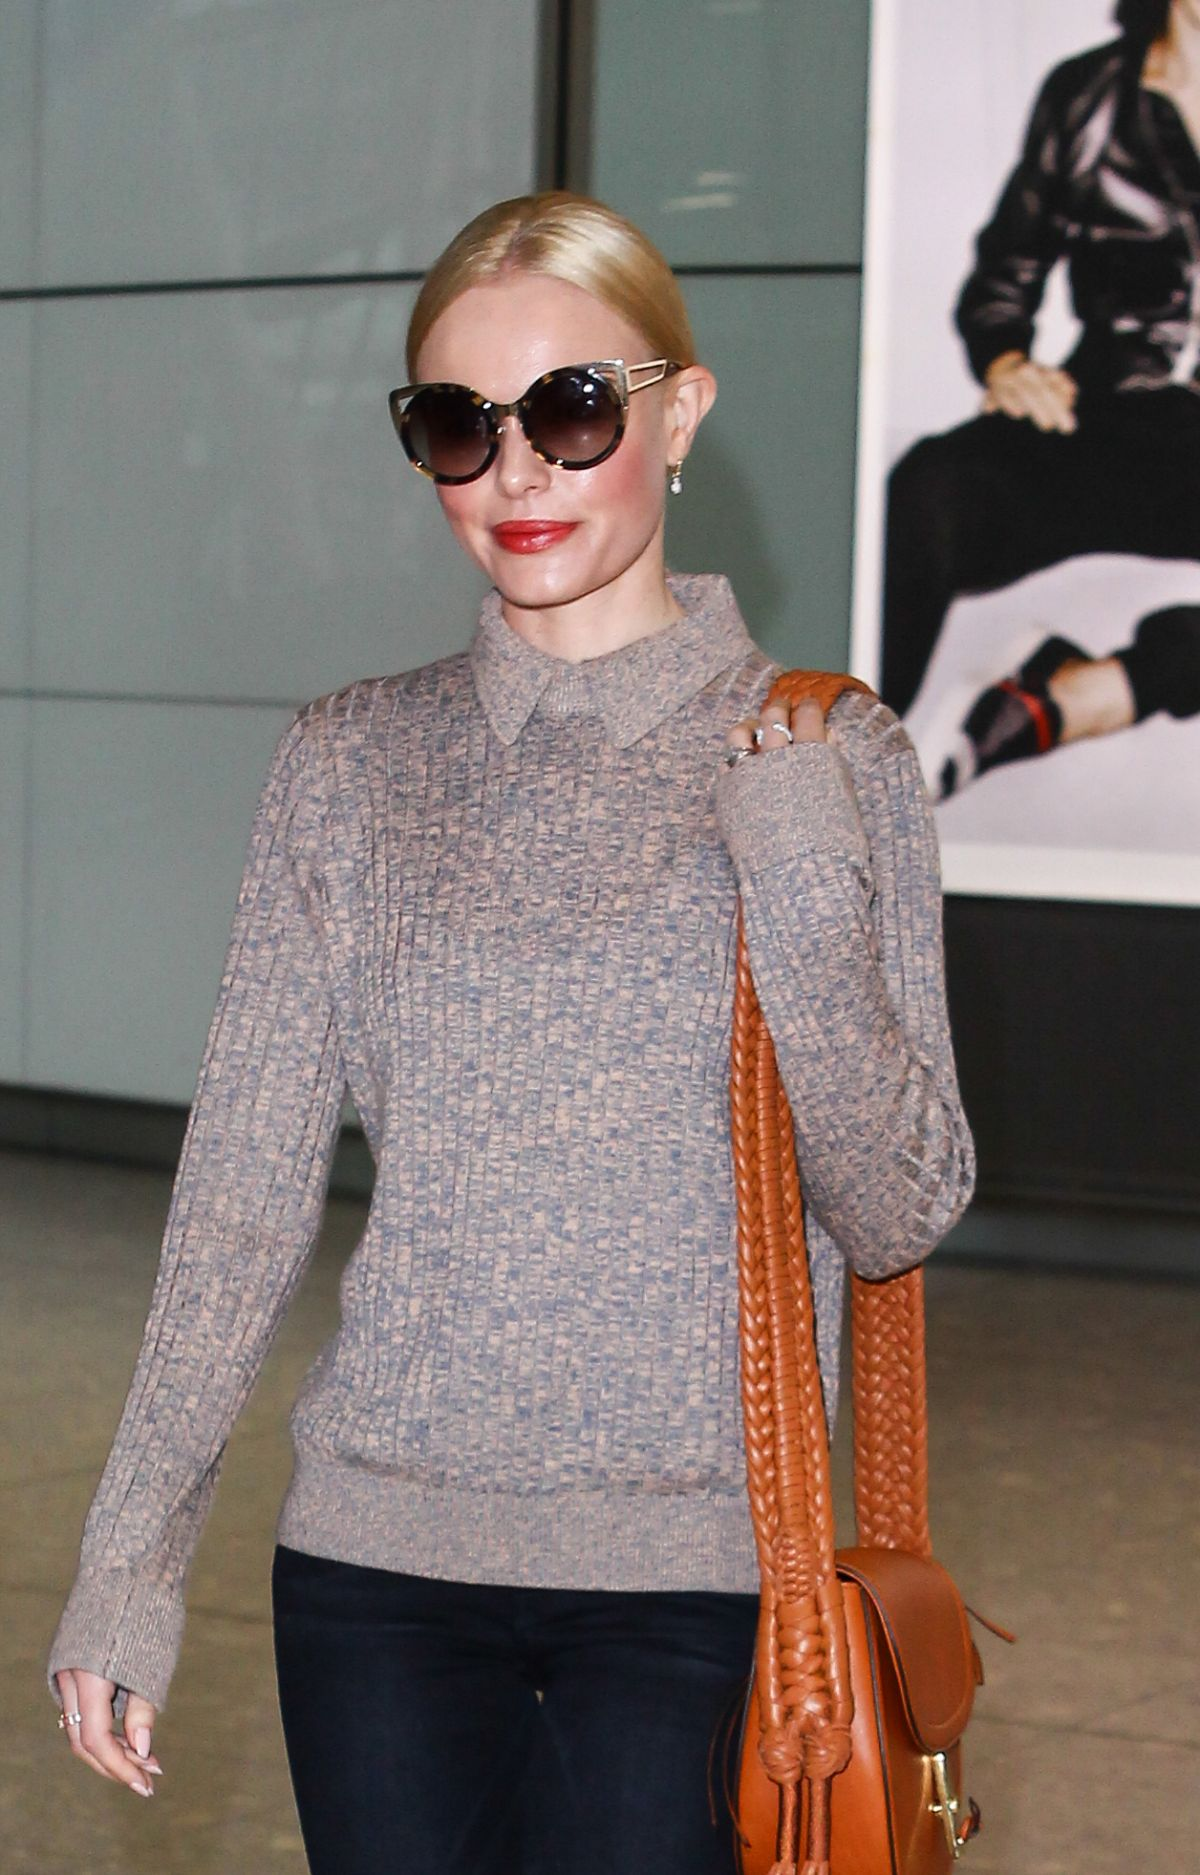 KATE BOSWORTH at Heathrow Airport in London 01/13/2016 ... Kate Bosworth